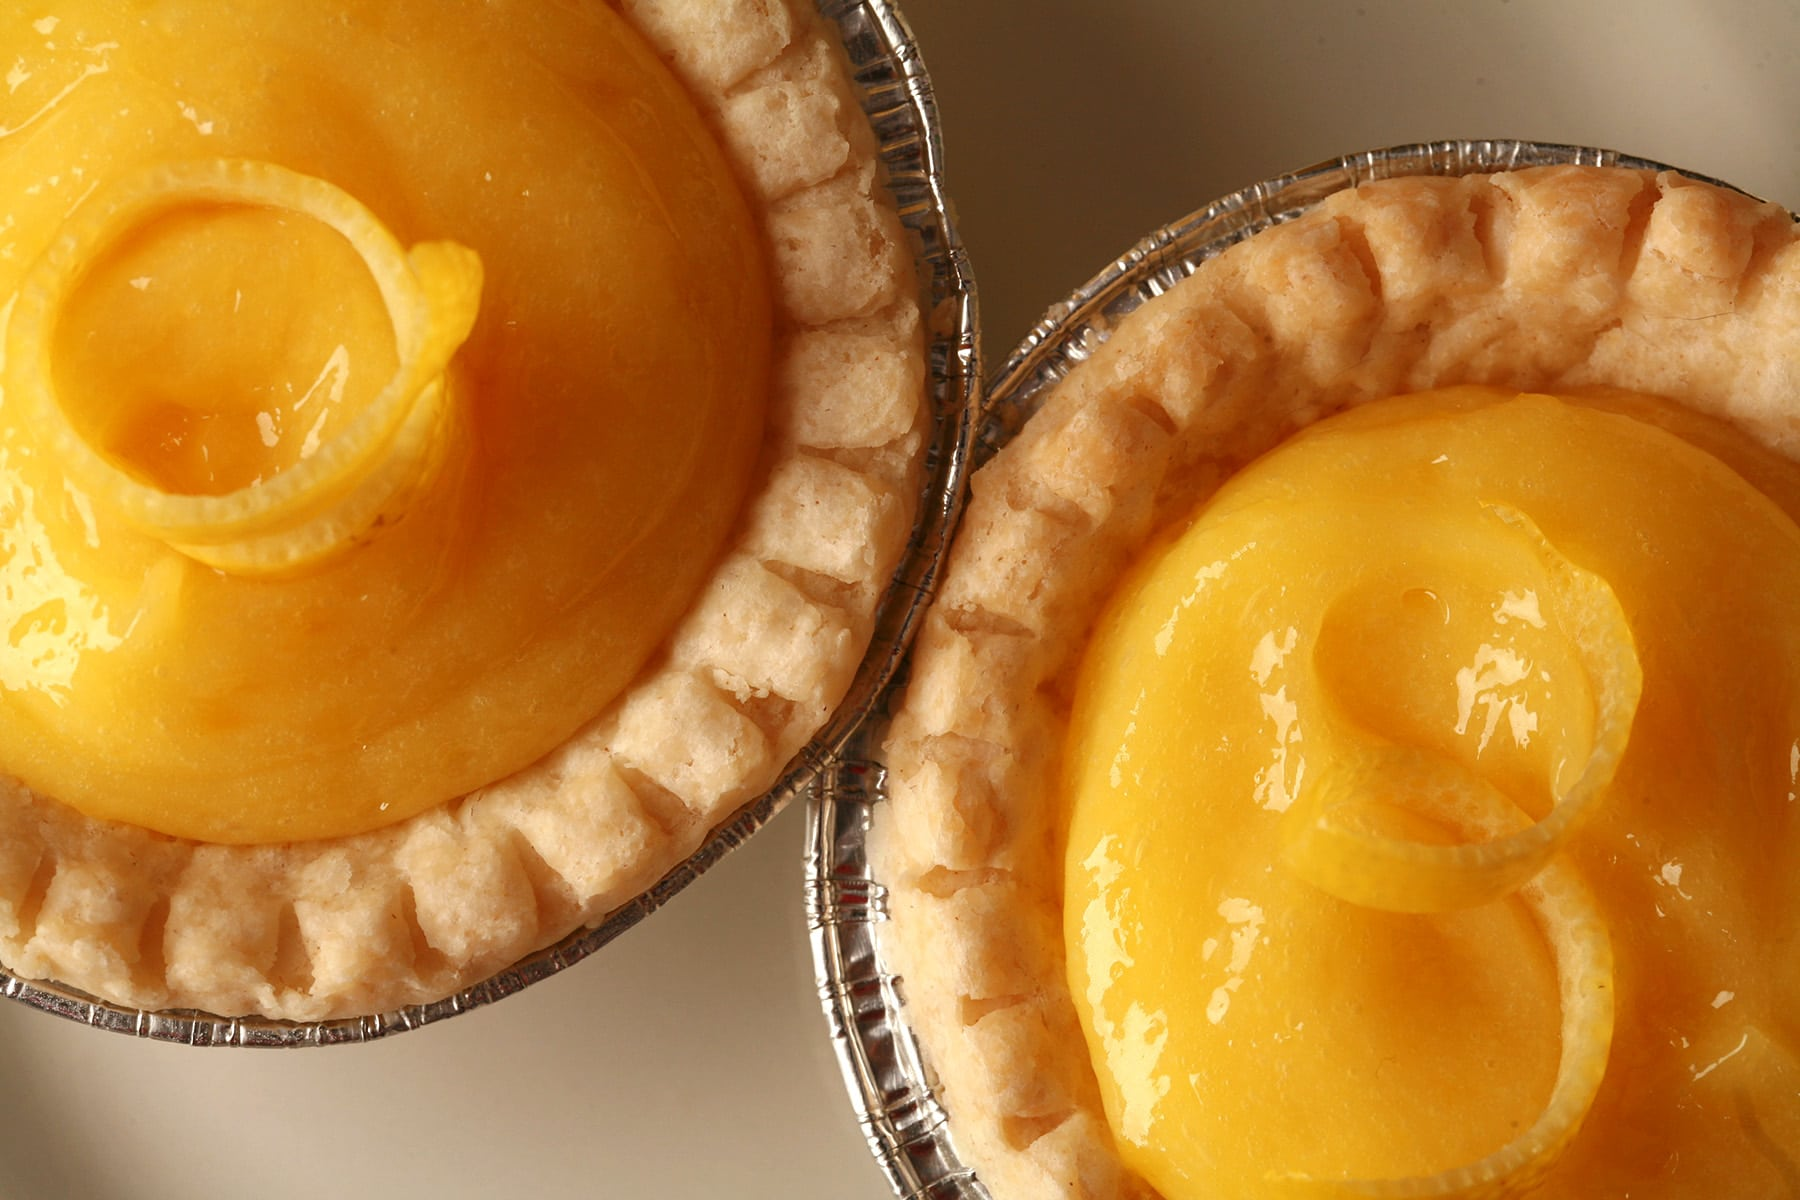 A close up view of two lemon tarts.